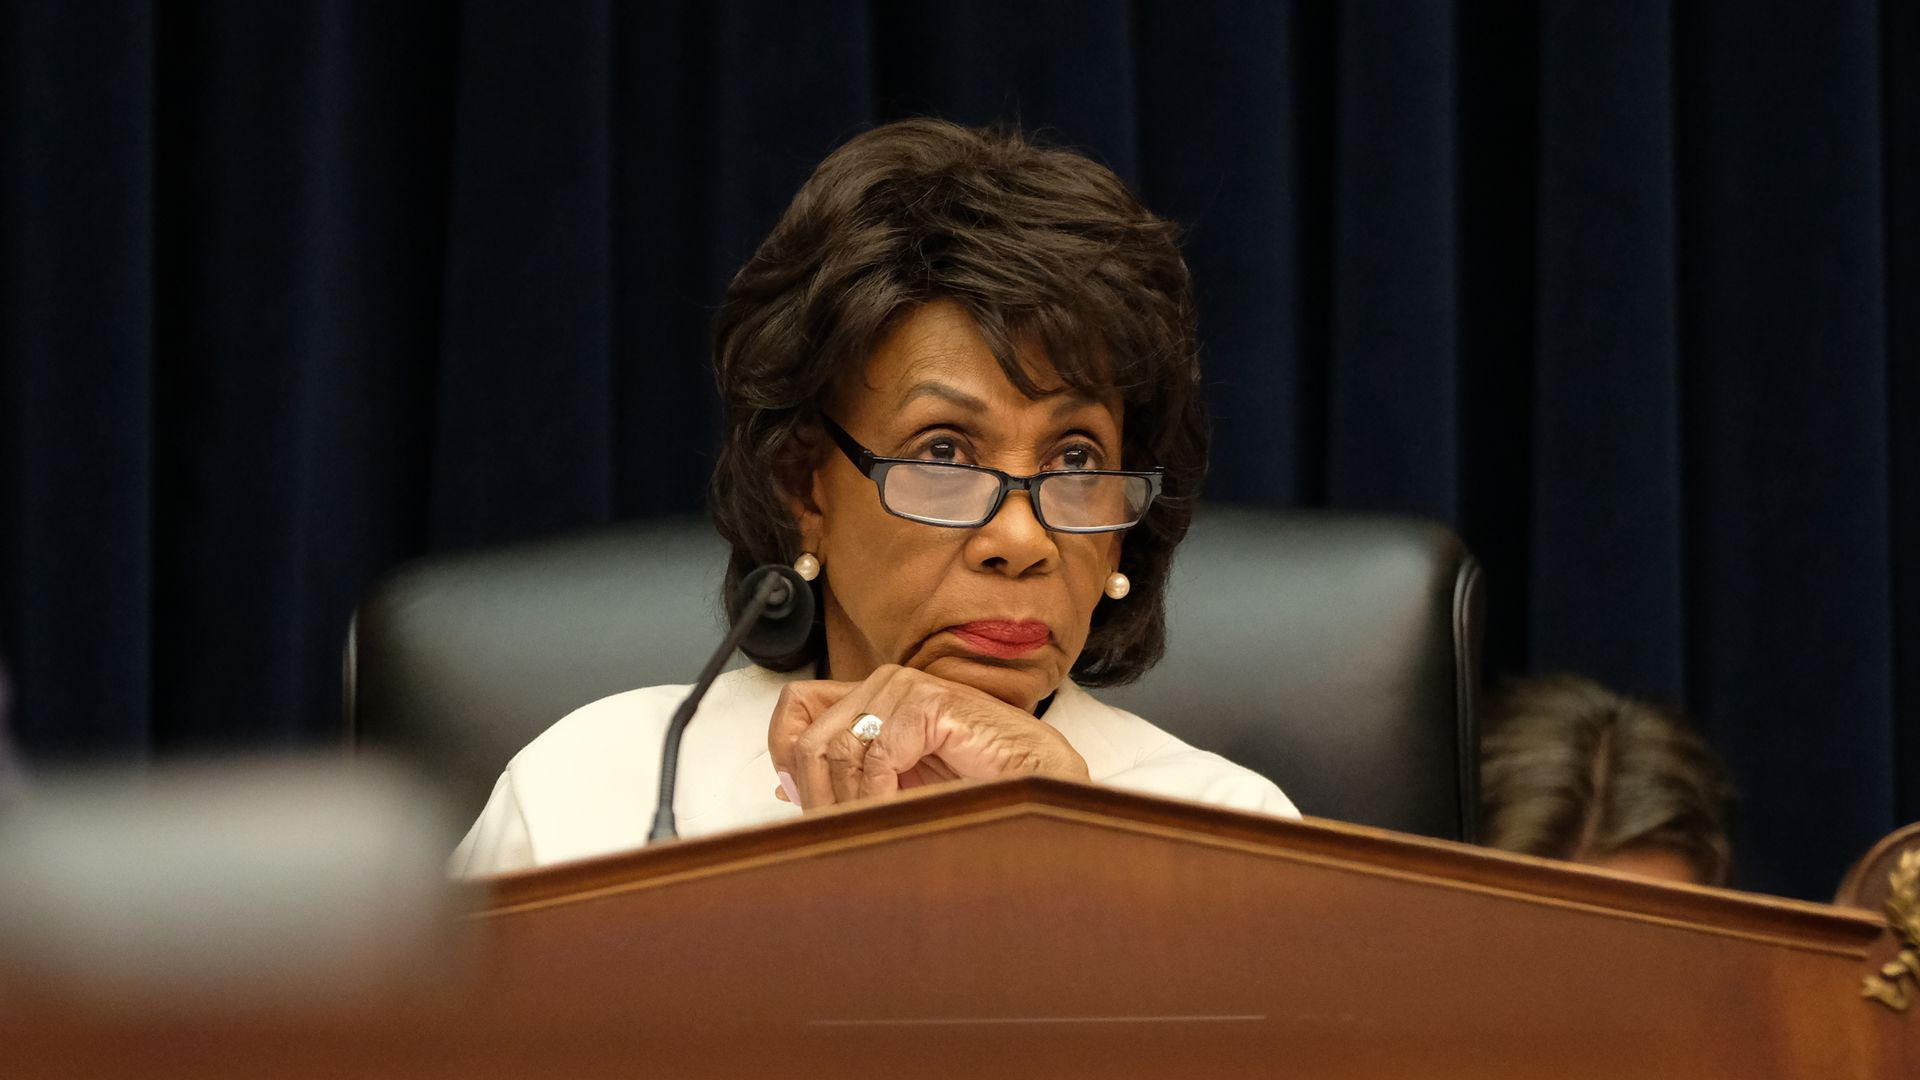 Chairwoman of the House Financial Services Committee Rep. Maxine Waters.